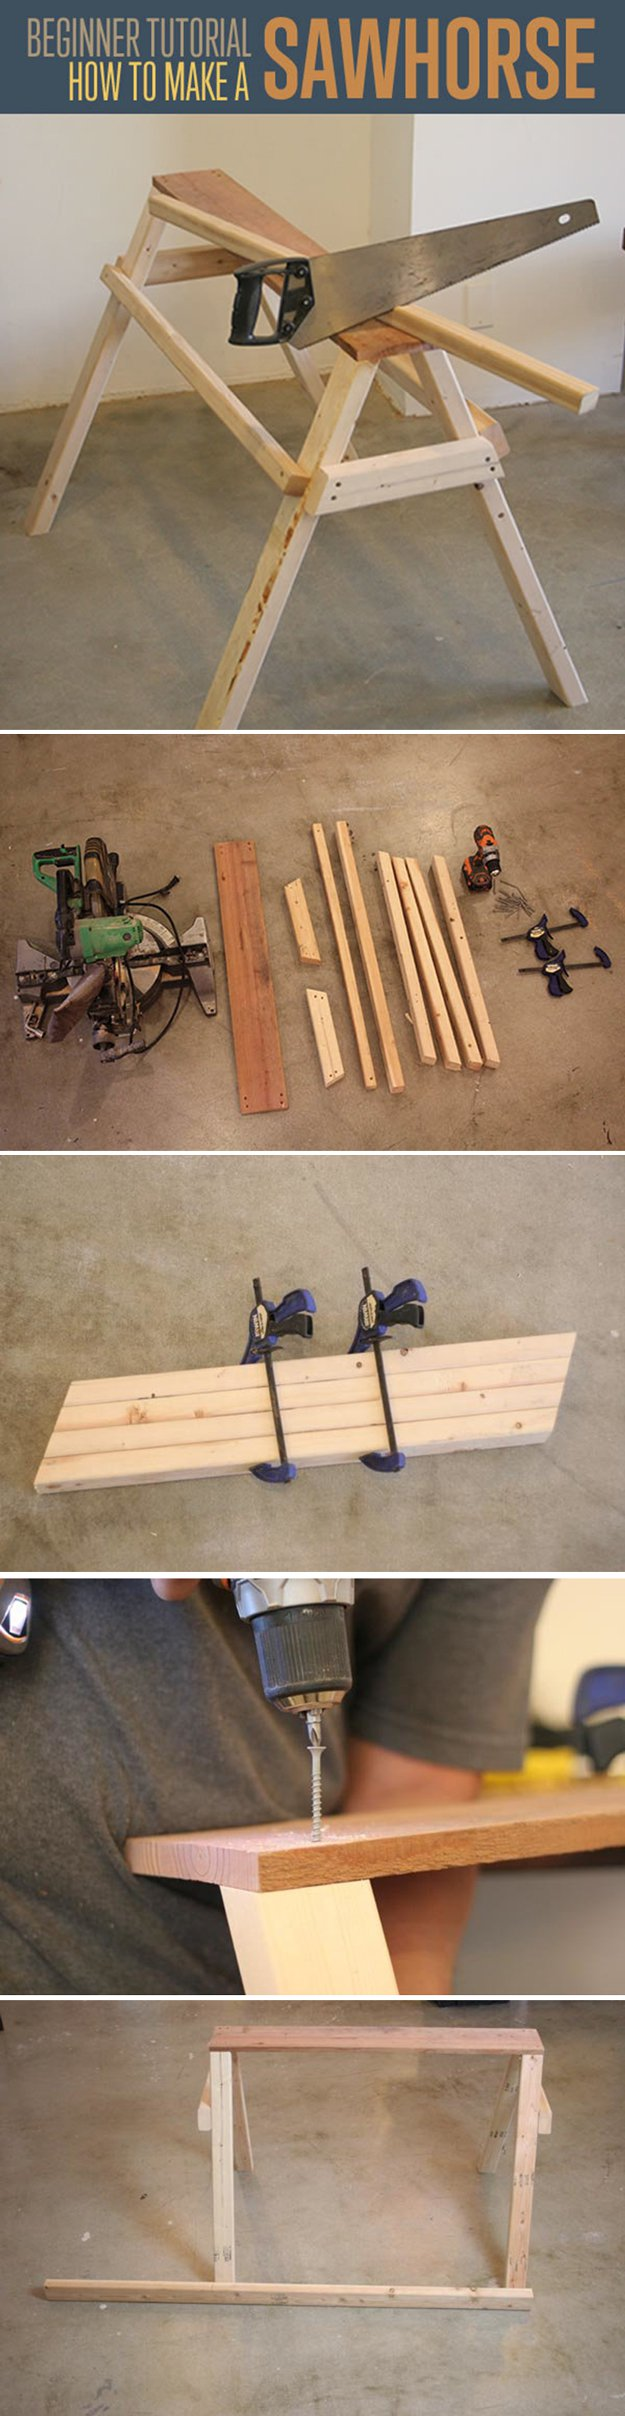 ... Projects for Beginners | http://diyready.com/easy-woodworking-projects